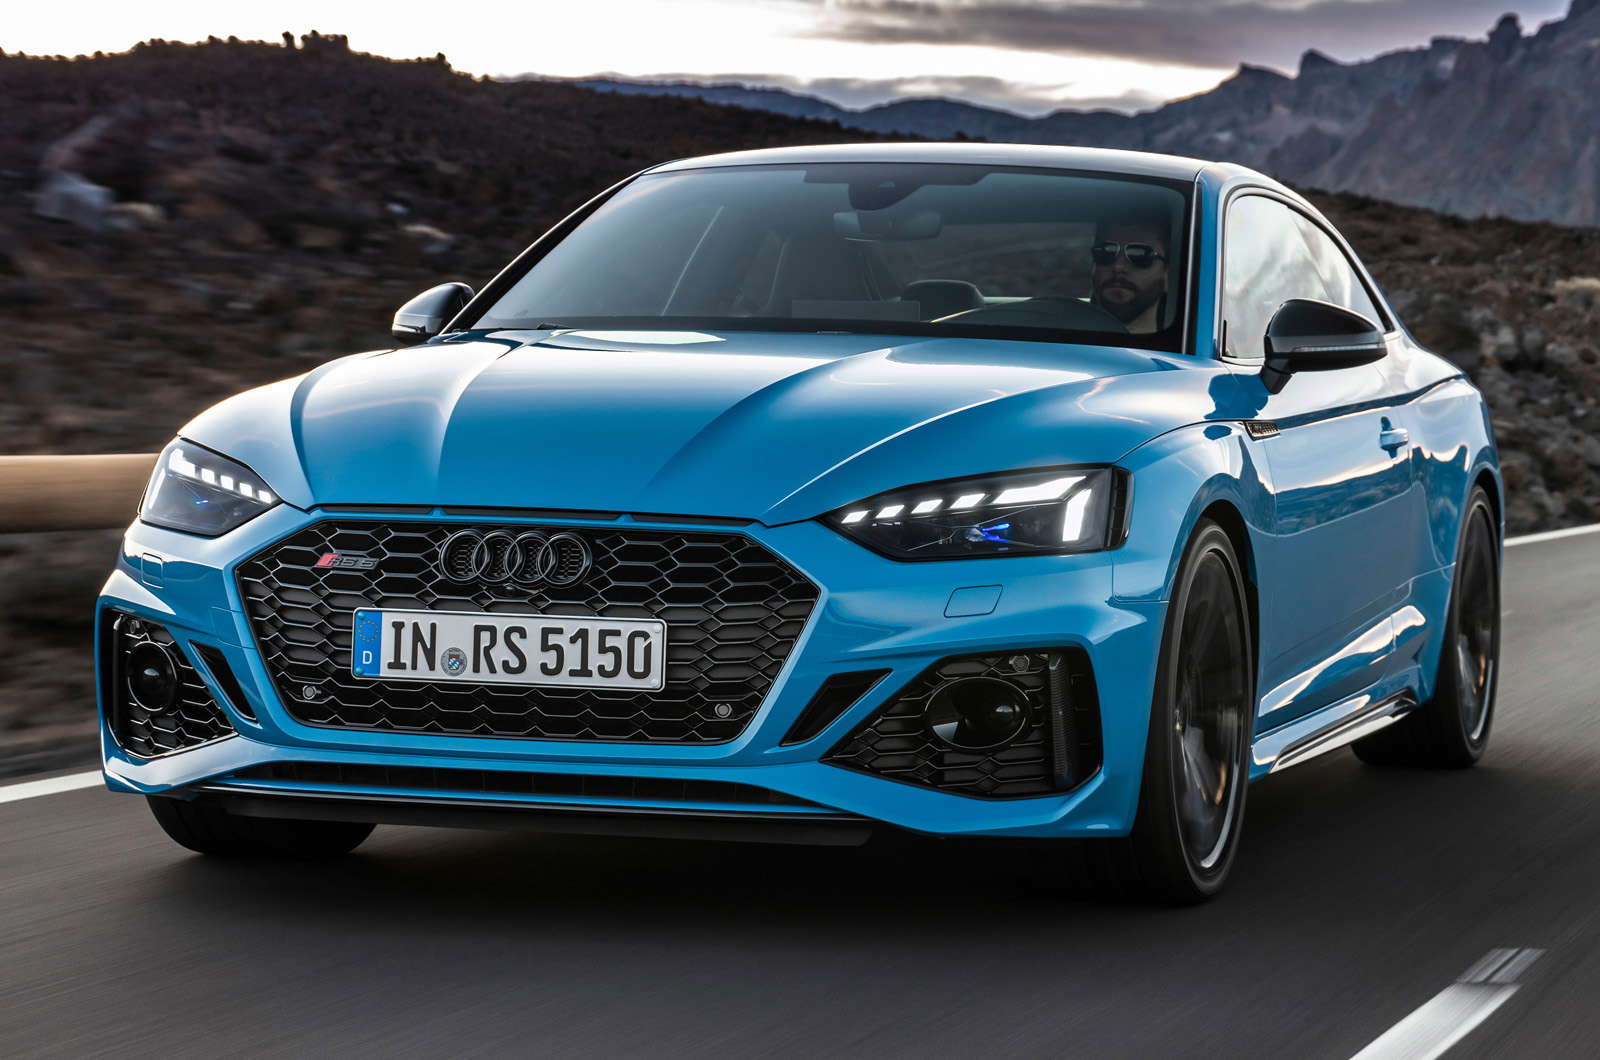 2020 Audi Rs5 Gains Refreshed Design And New Tech Autocar